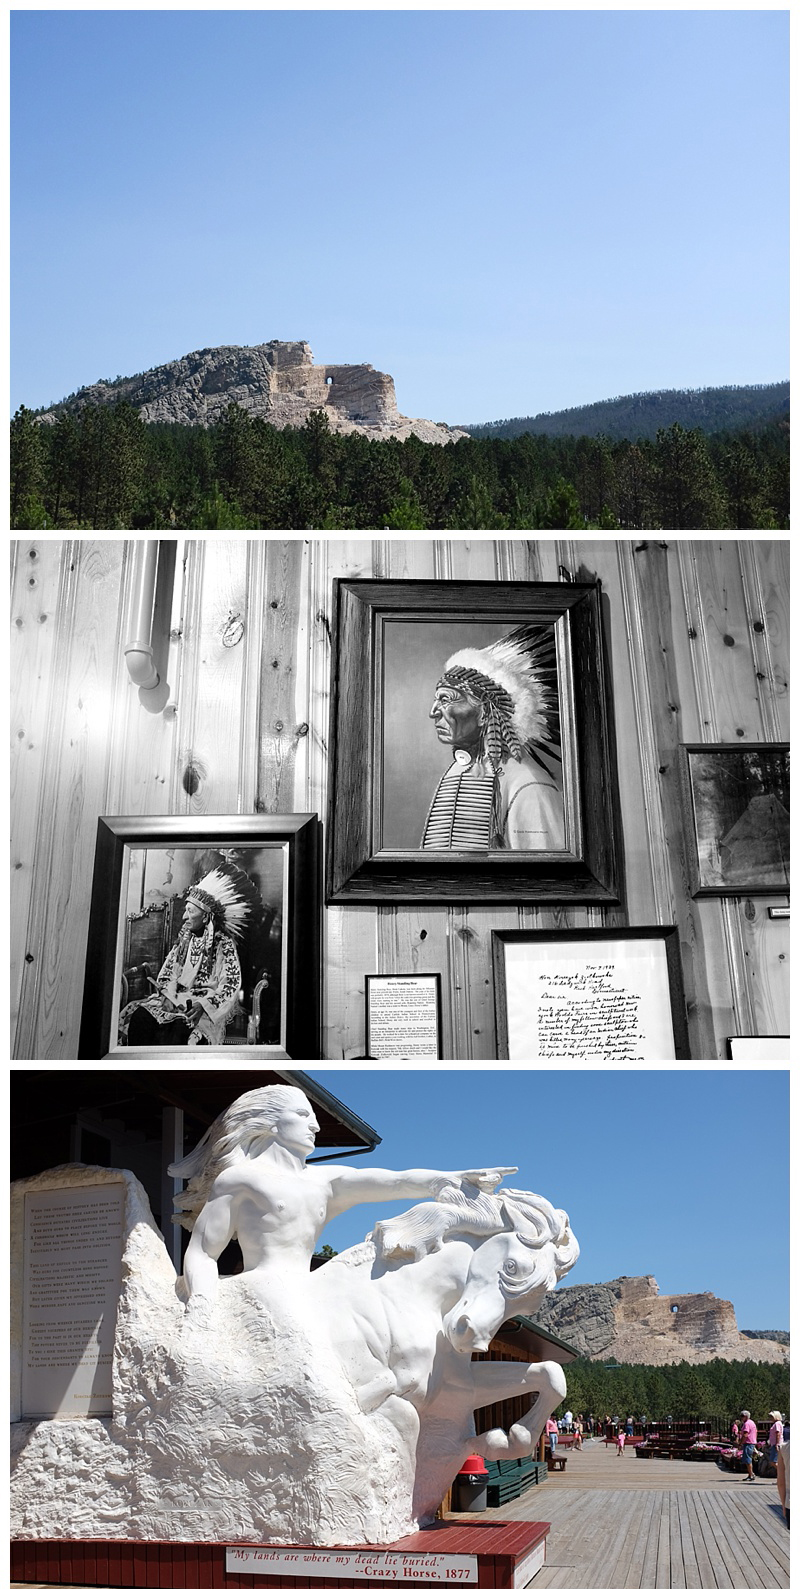 Rockies_Mt_Rushmore_Deadwood_Crazy_Horse_022